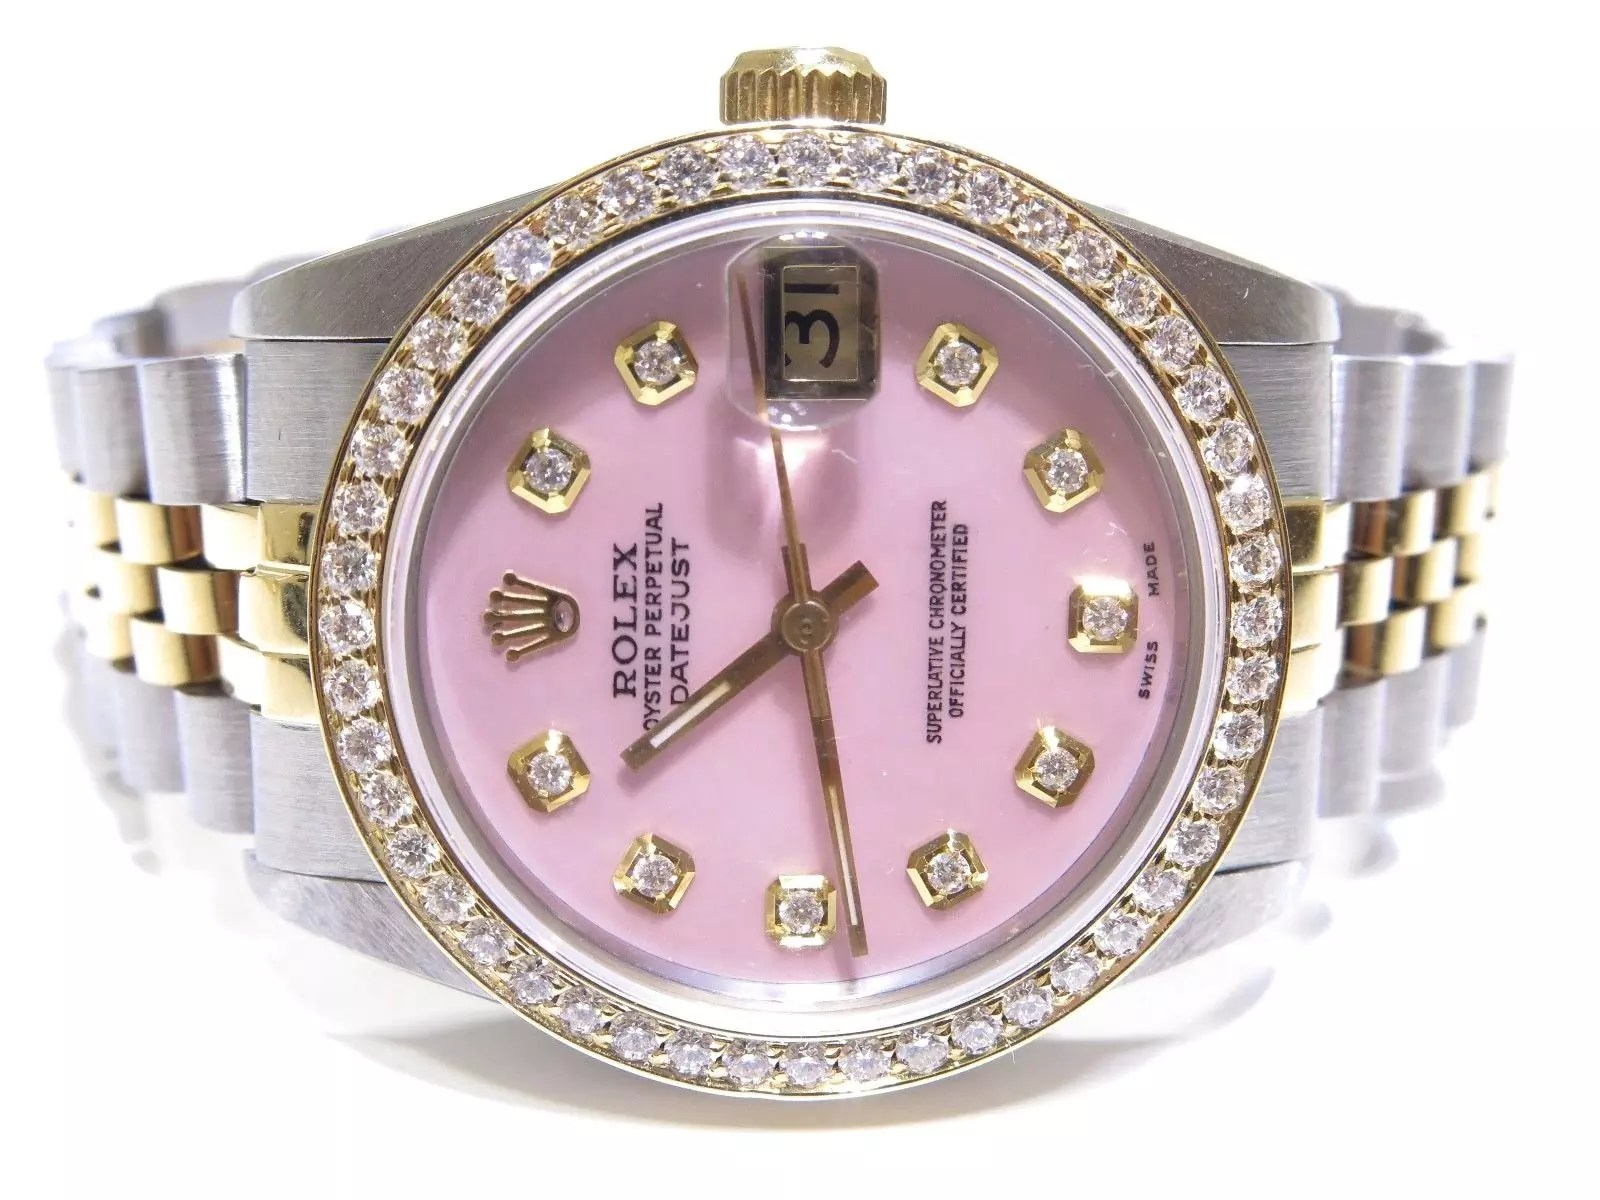 Rolex Ladies Watches Rolex Ladies Datejust Pink Diamond Dial Jubilee Band Two Tone Watch